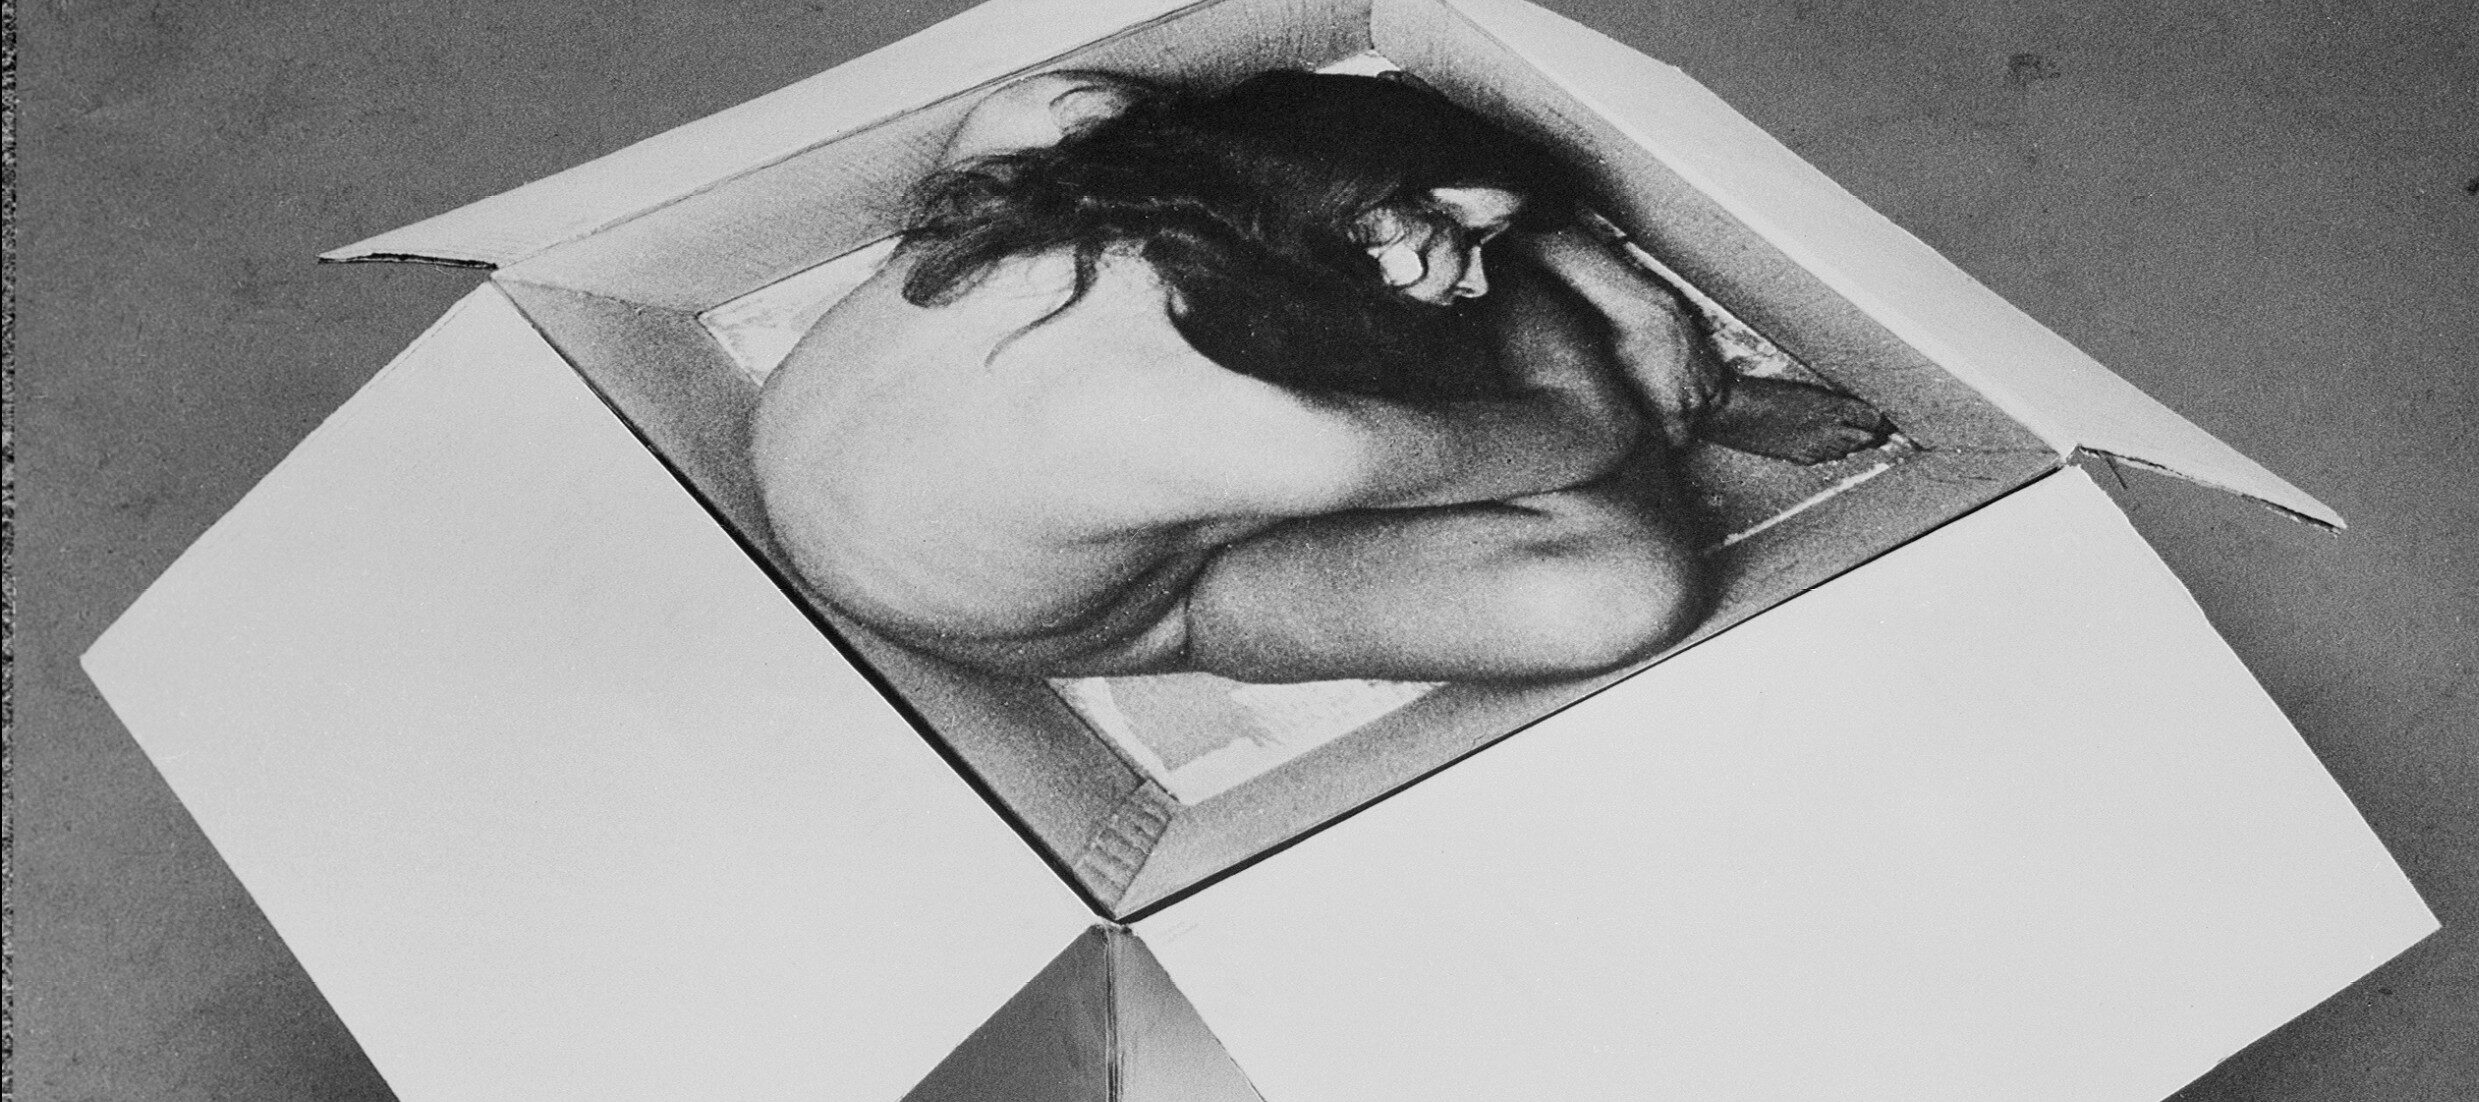 Kirsten Justesen, <i>Sculpture #2</i>, 1968/2010, Edition II, 1/5; Painted cardboard box and screened photograph, overall: 20 in x 24 in x 24 in.; Gift of Montana A/S